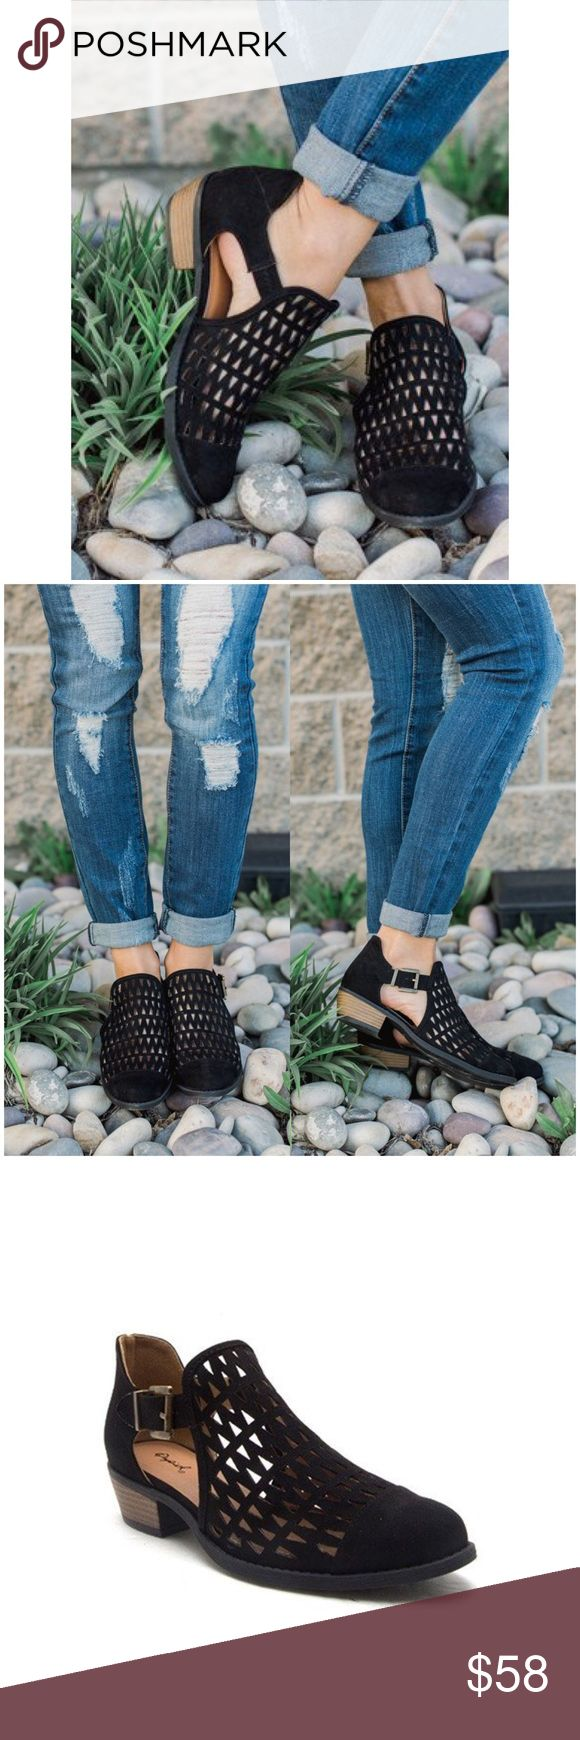 """🌸CLEARANCE🌸Tobin Black Triangle Cut Out Booties Booties are the new tennis shoes! Made for every day comfort, Tobin is a low heel bootie with a triangle cut-out pattern and buckle closure. style these delightful ankle boots with boyfriend cut jeans or a dress. you will be comfortable for your every day run around.  faux suede bootie with triangle mesh pattern on the upper. buckle closure on the outside ankle. material: man made heel height: 1"""" Boutique Shoes Ankle Boots & Booties"""